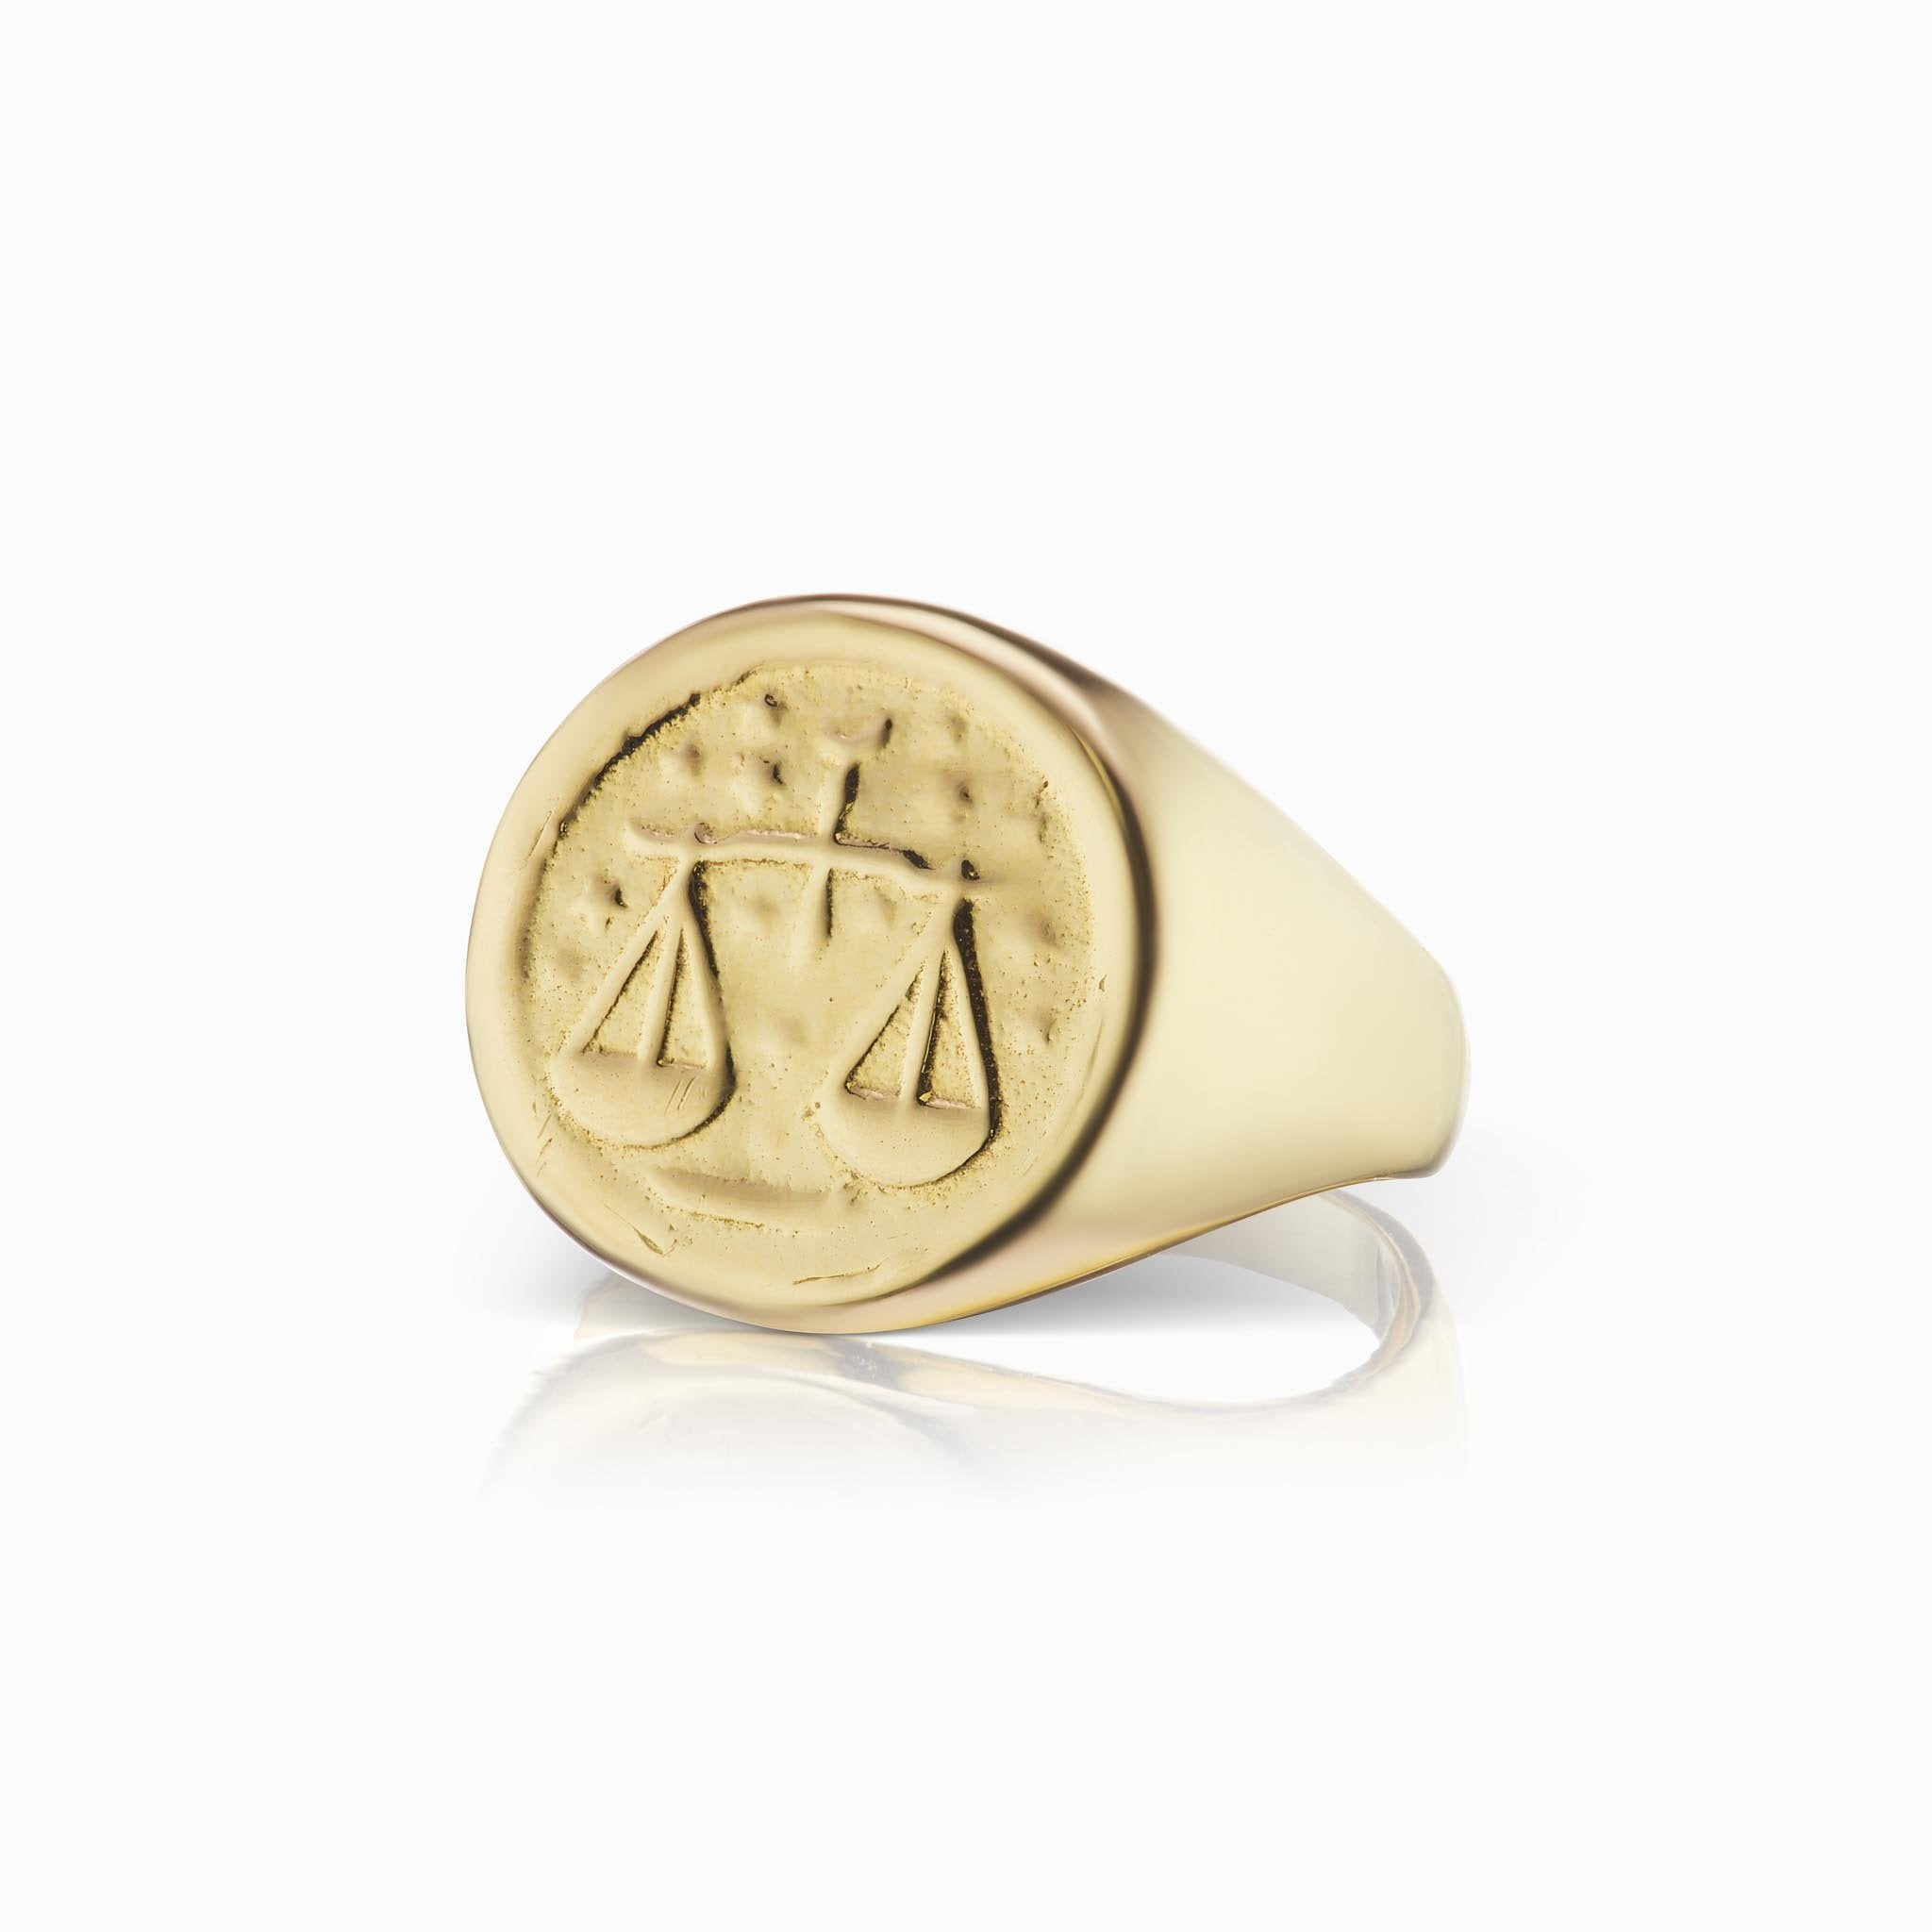 Zodiac Signet Ring - Libra - In Stock Now